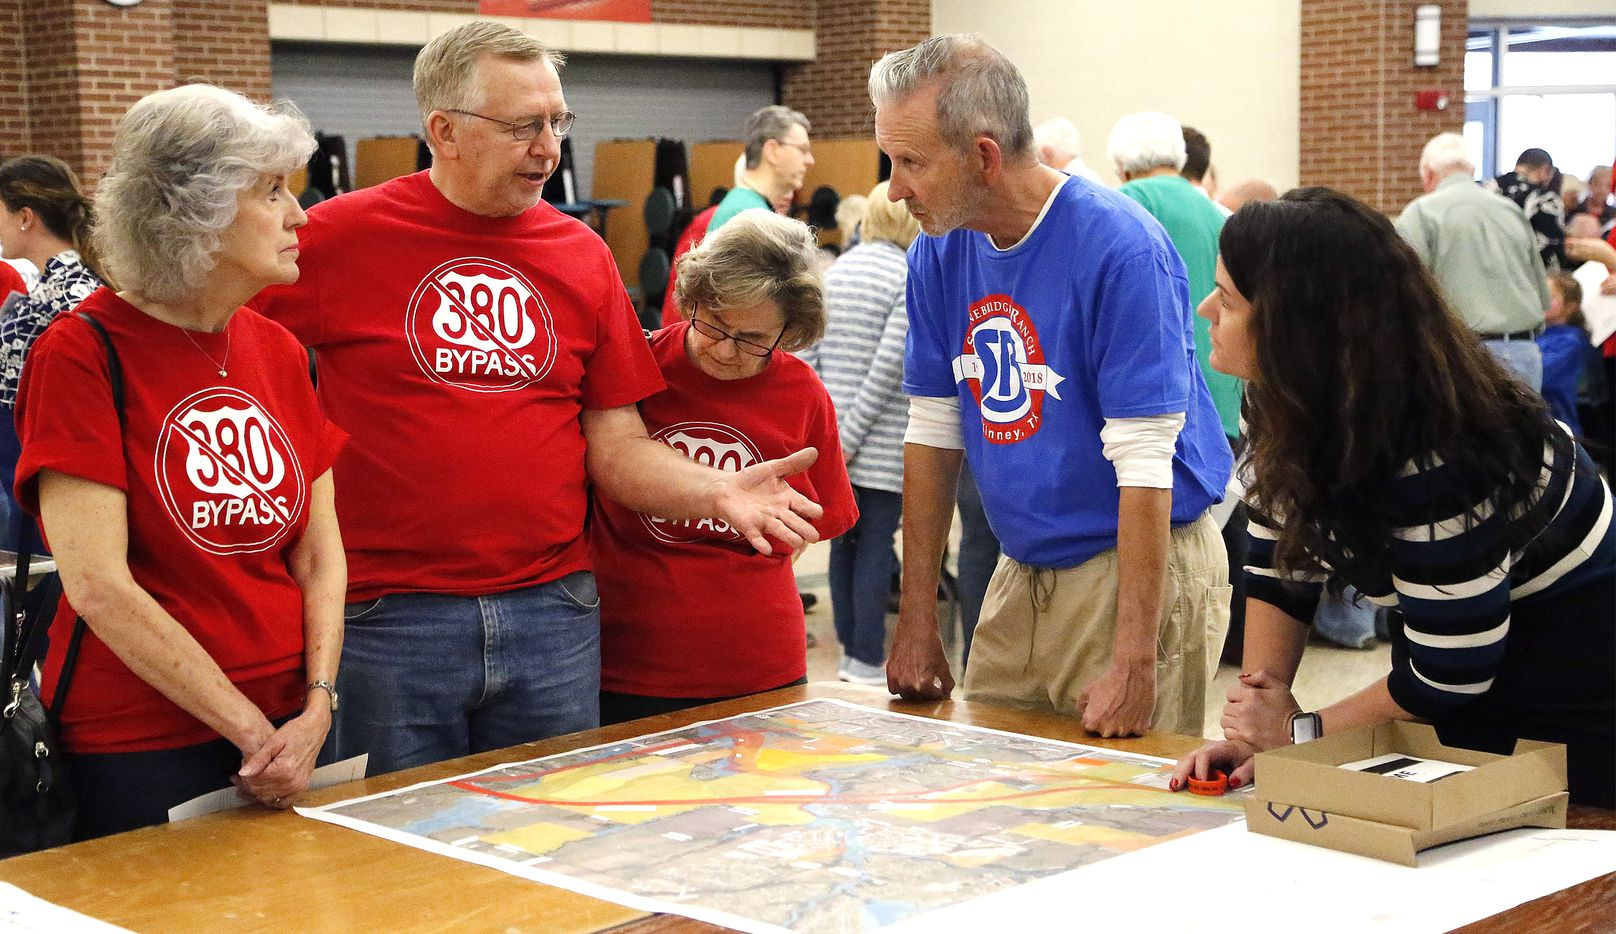 From left: Cindy Vogel of Walnut Grove, Gary Pierce of Walnut Grove and wife Melinda, Ron Cagle of Stonebridge Ranch and project consultant Chelsey Smith talked over questions as residents met to look at maps of the latest iteration of the proposed bypass for Highway 380 at Rogers Middle School in Prosper on Thursday.